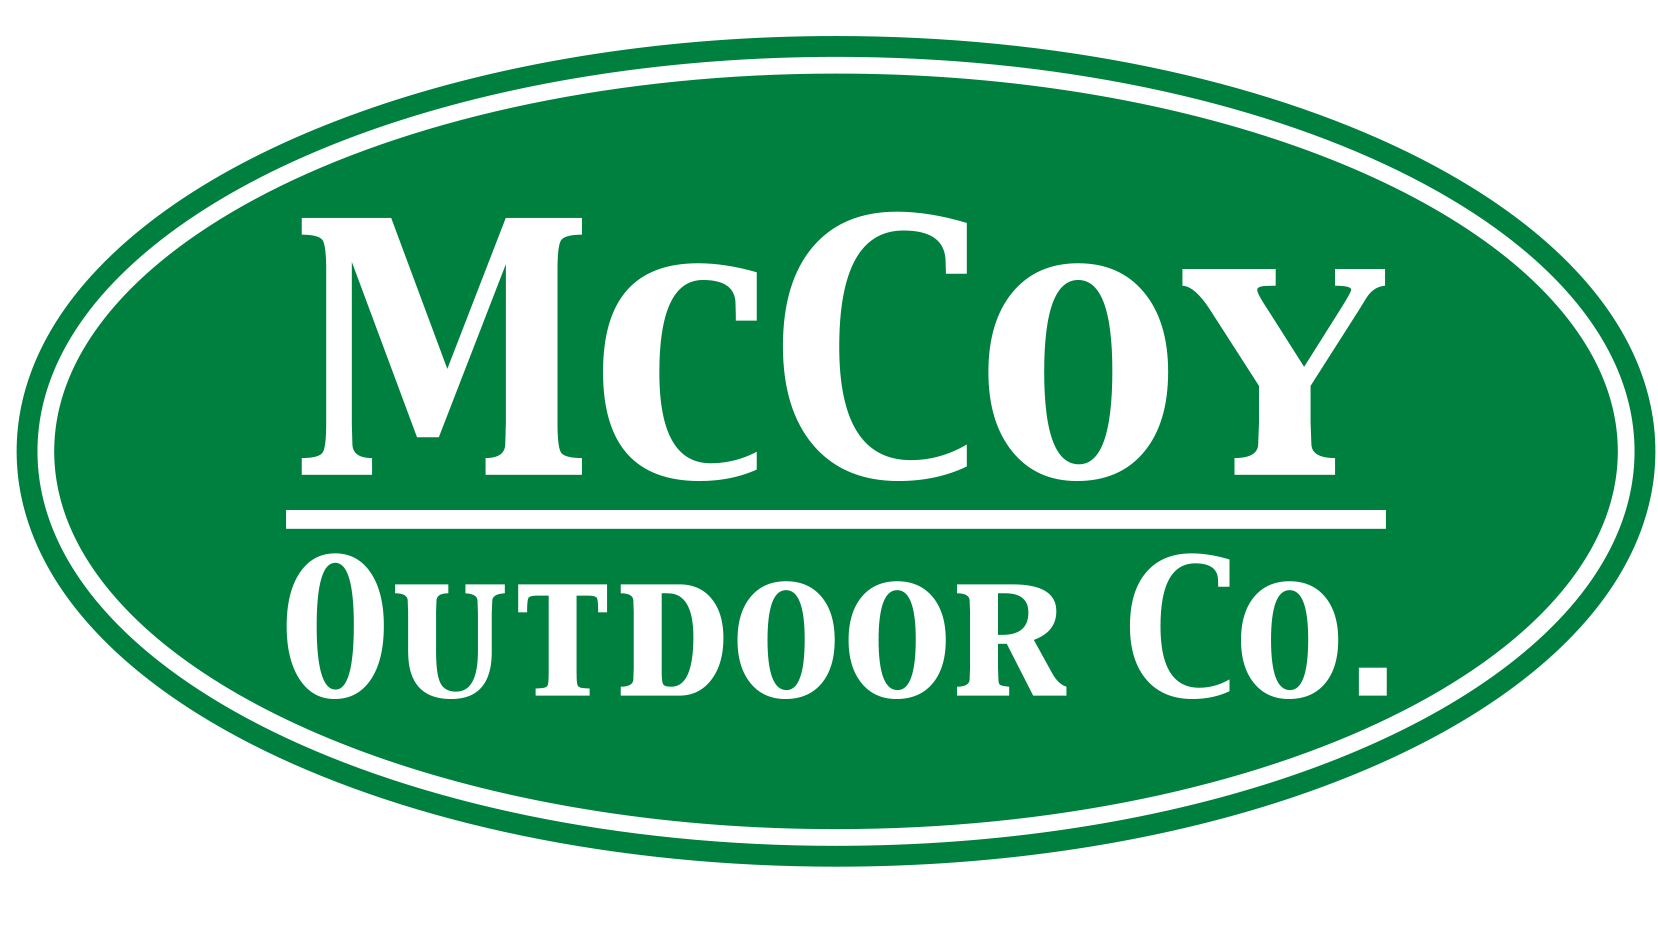 McCoy Outdoor Company